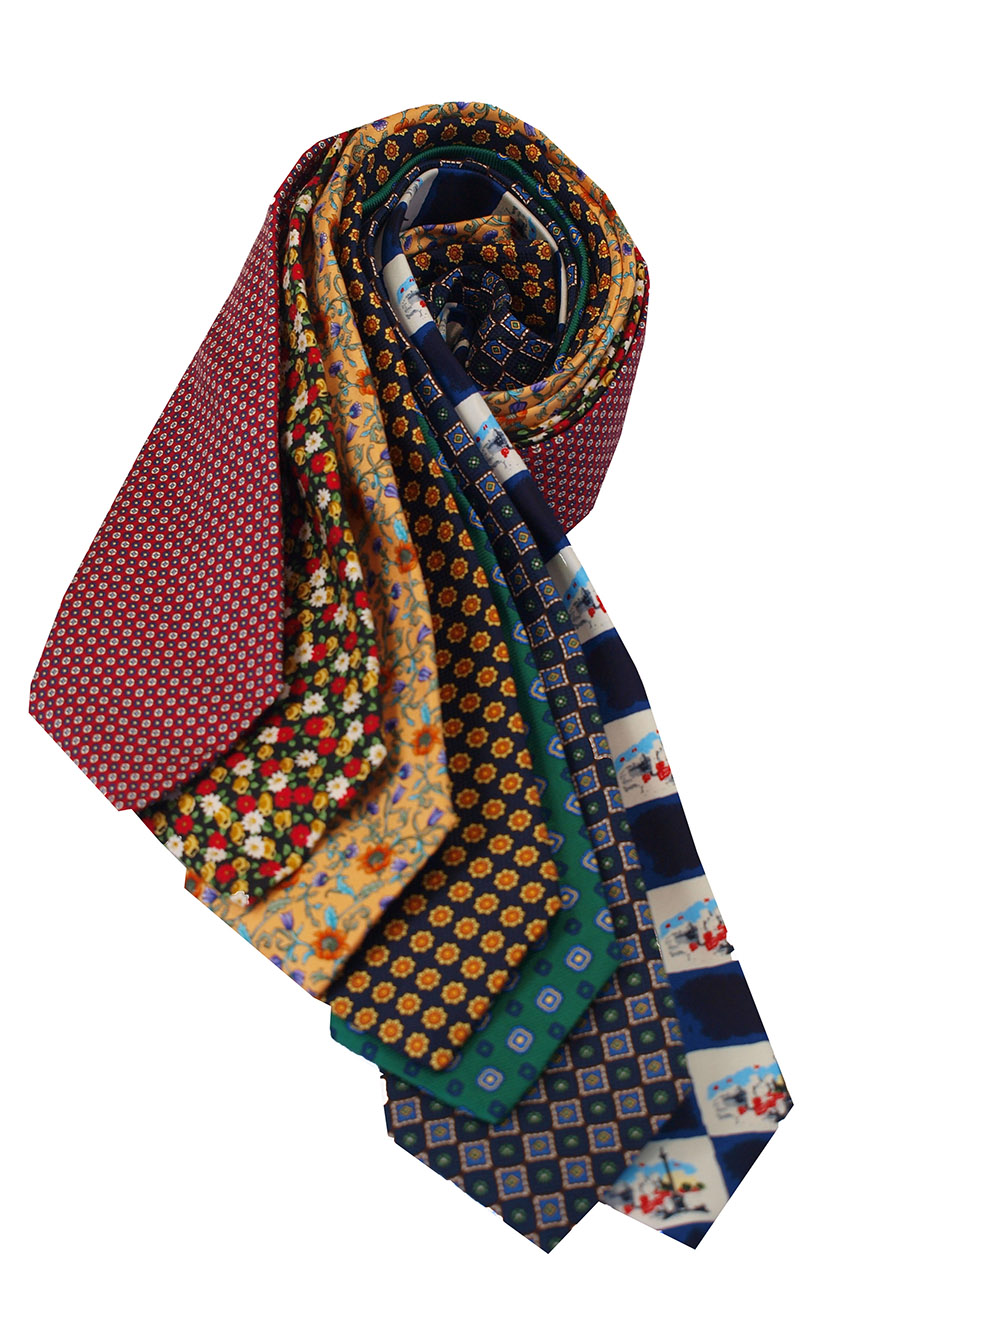 Cavenagh of London 7Piece 100% Pure Silk Ties Made in UK (117D)RRP£139.99